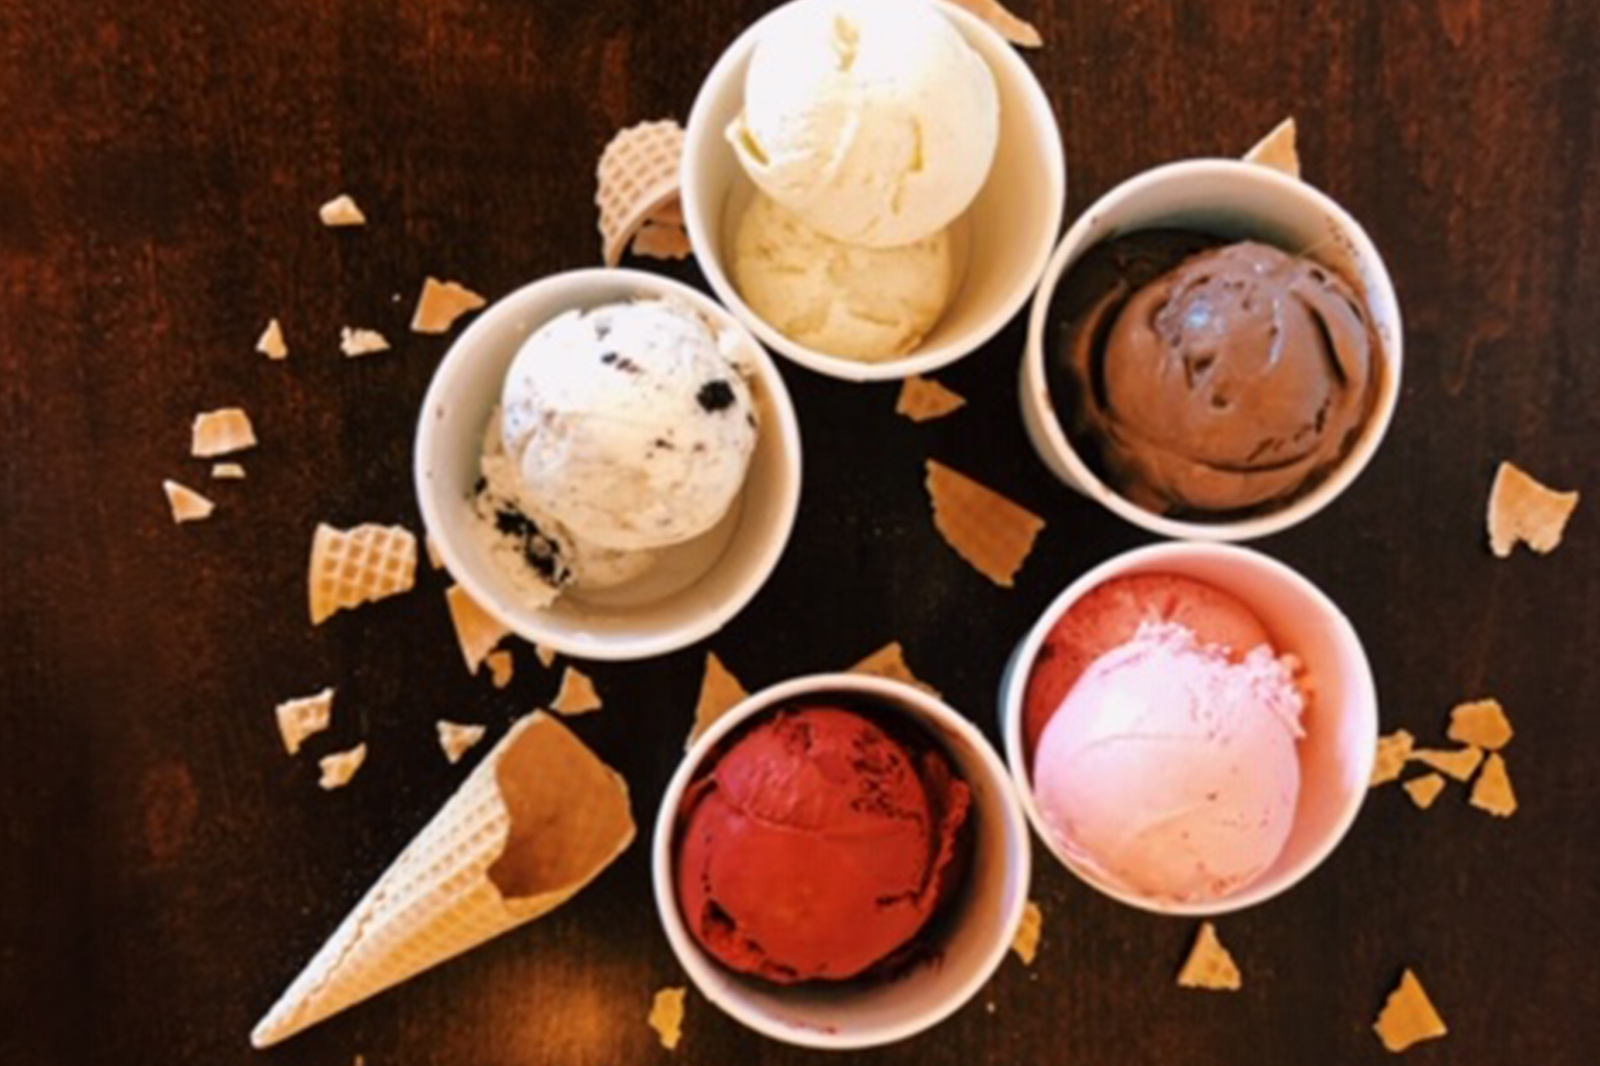 Enjoy our variety of flavors at 4 Cows